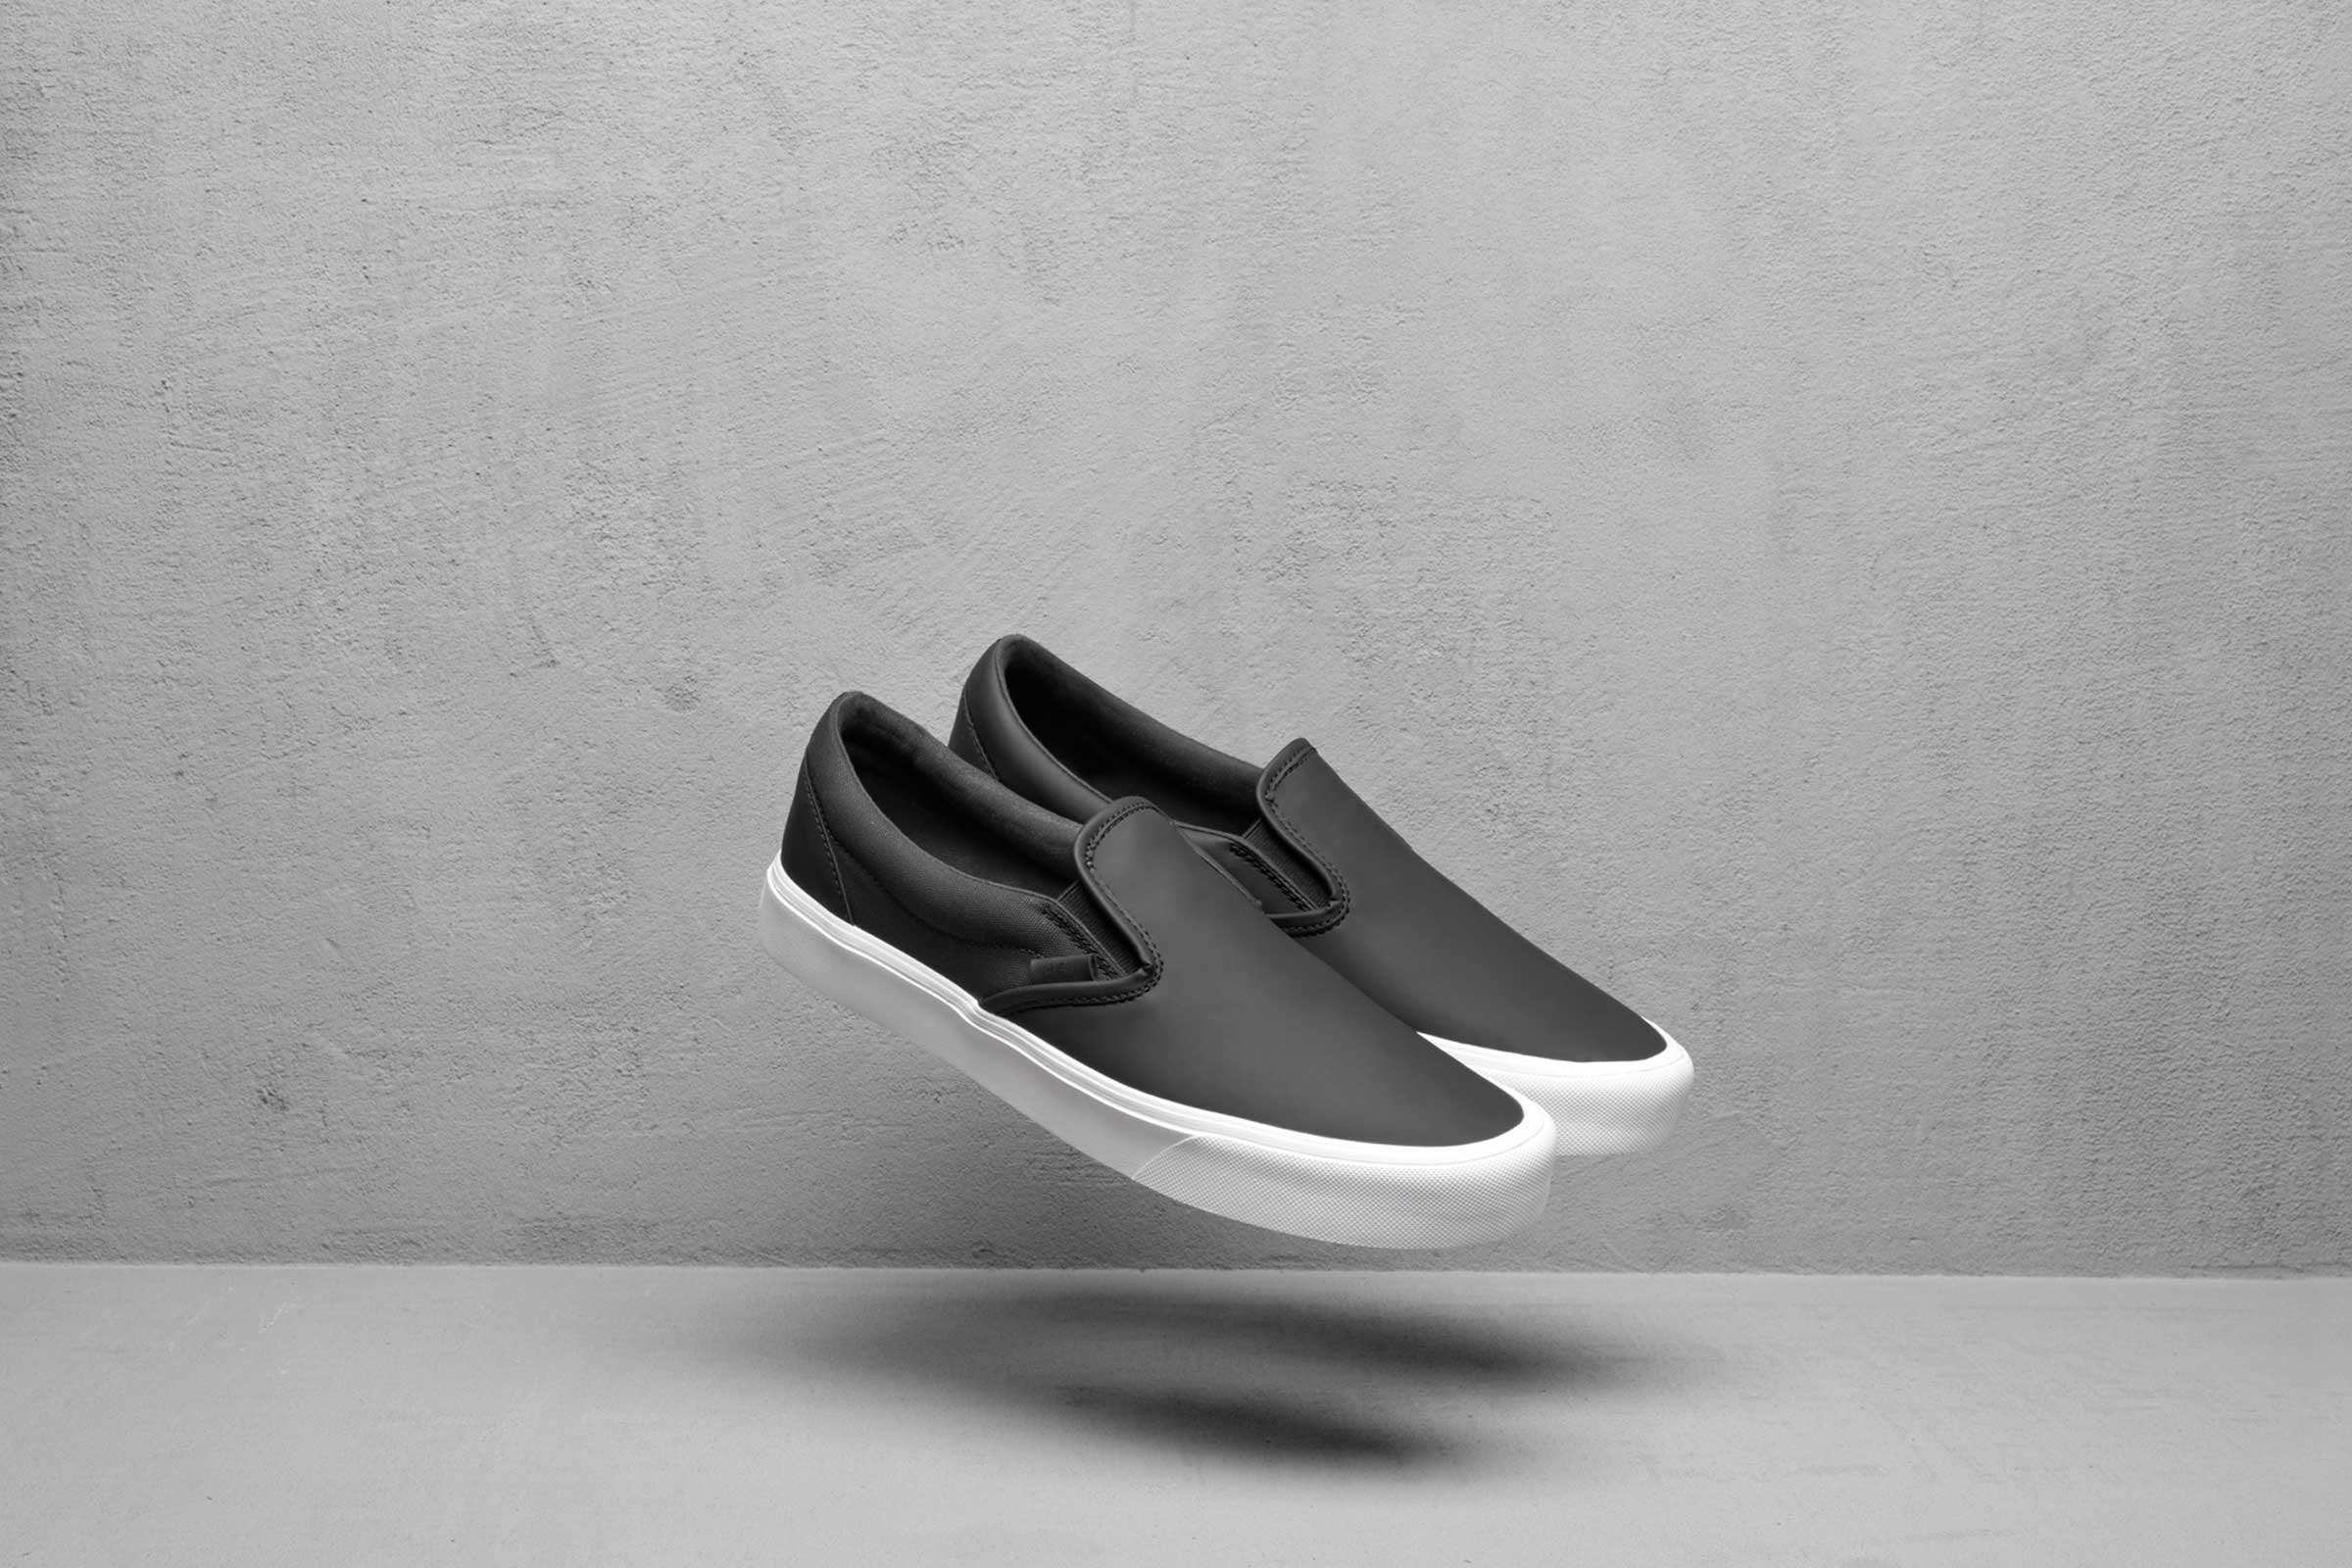 RAINS x Vans – Slip On Lite Sneakers Best New Sneakers 8bcb0d524